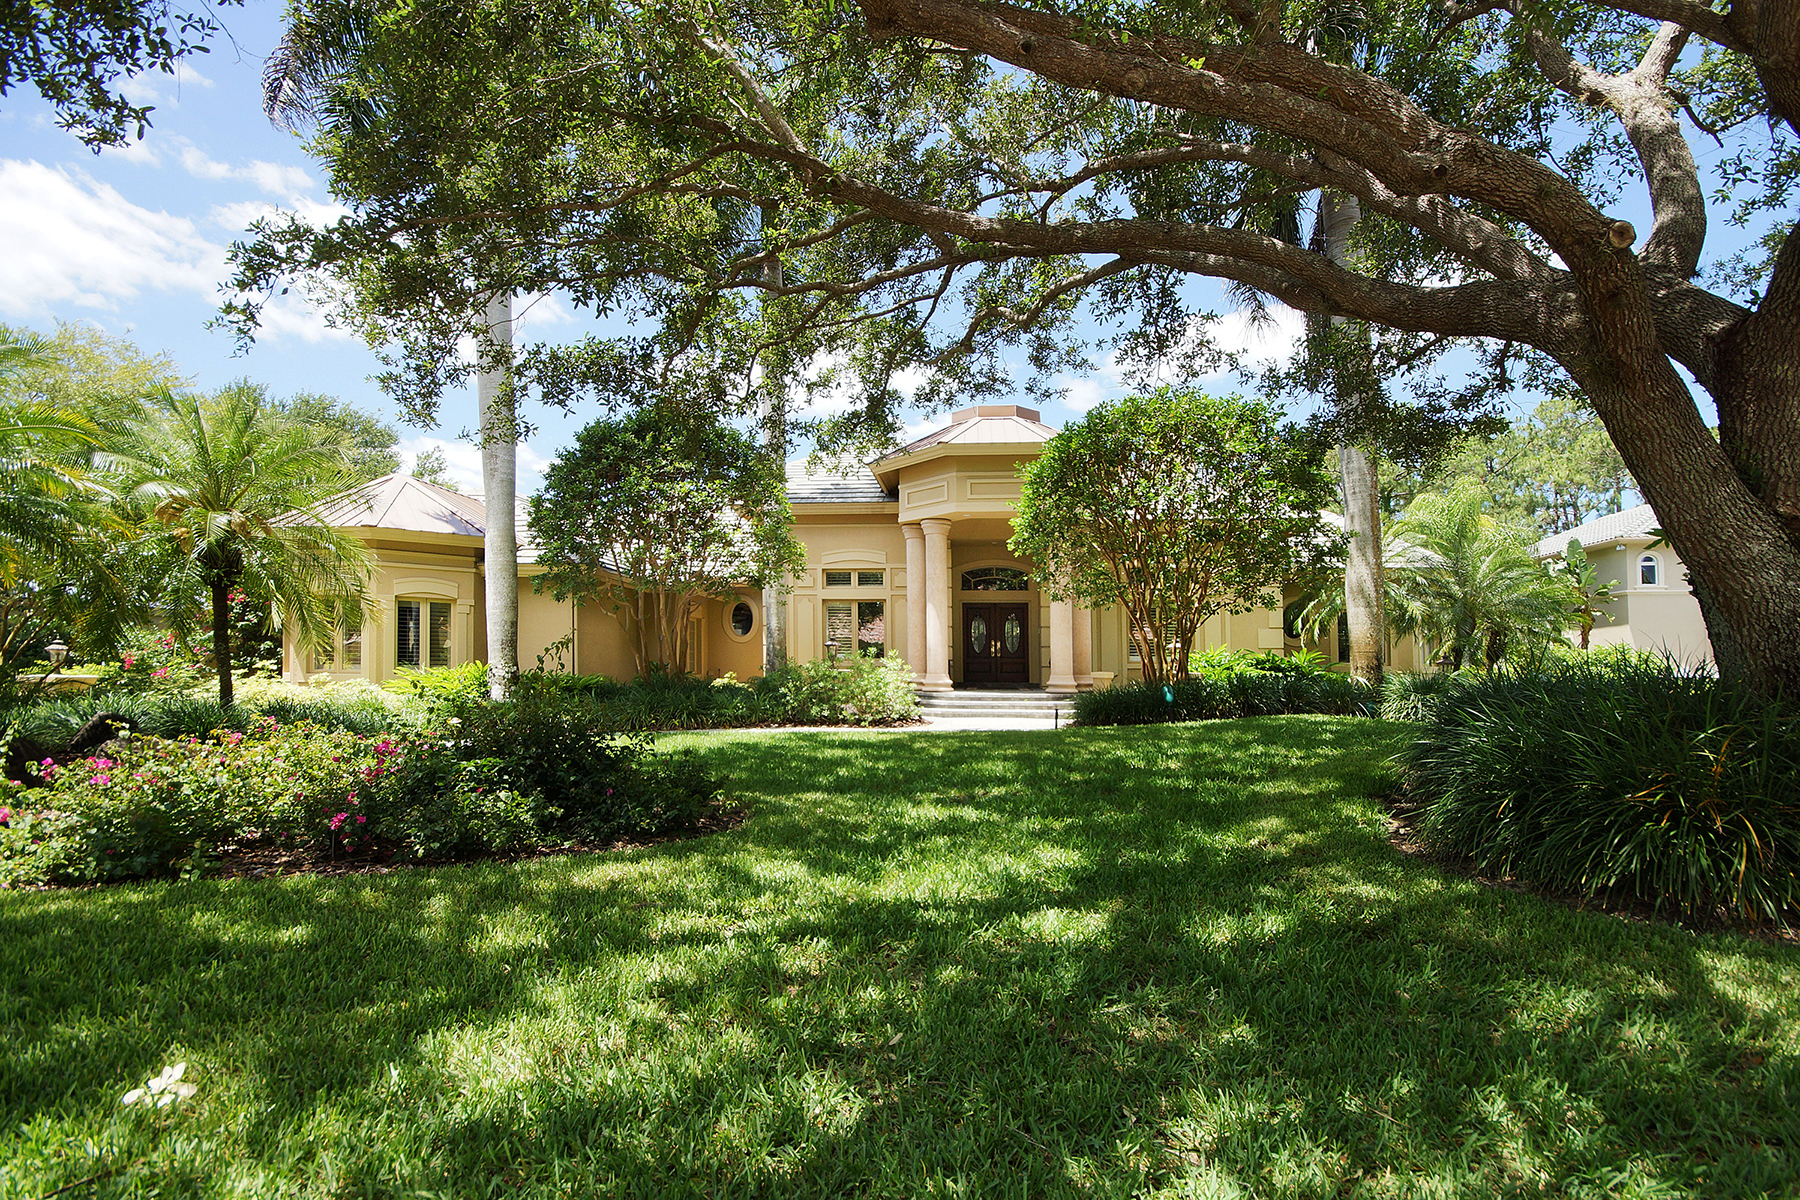 Single Family Home for Sale at 2629 Bulrush Ln , Naples, FL 34105 2629 Bulrush Ln Naples, Florida 34105 United States